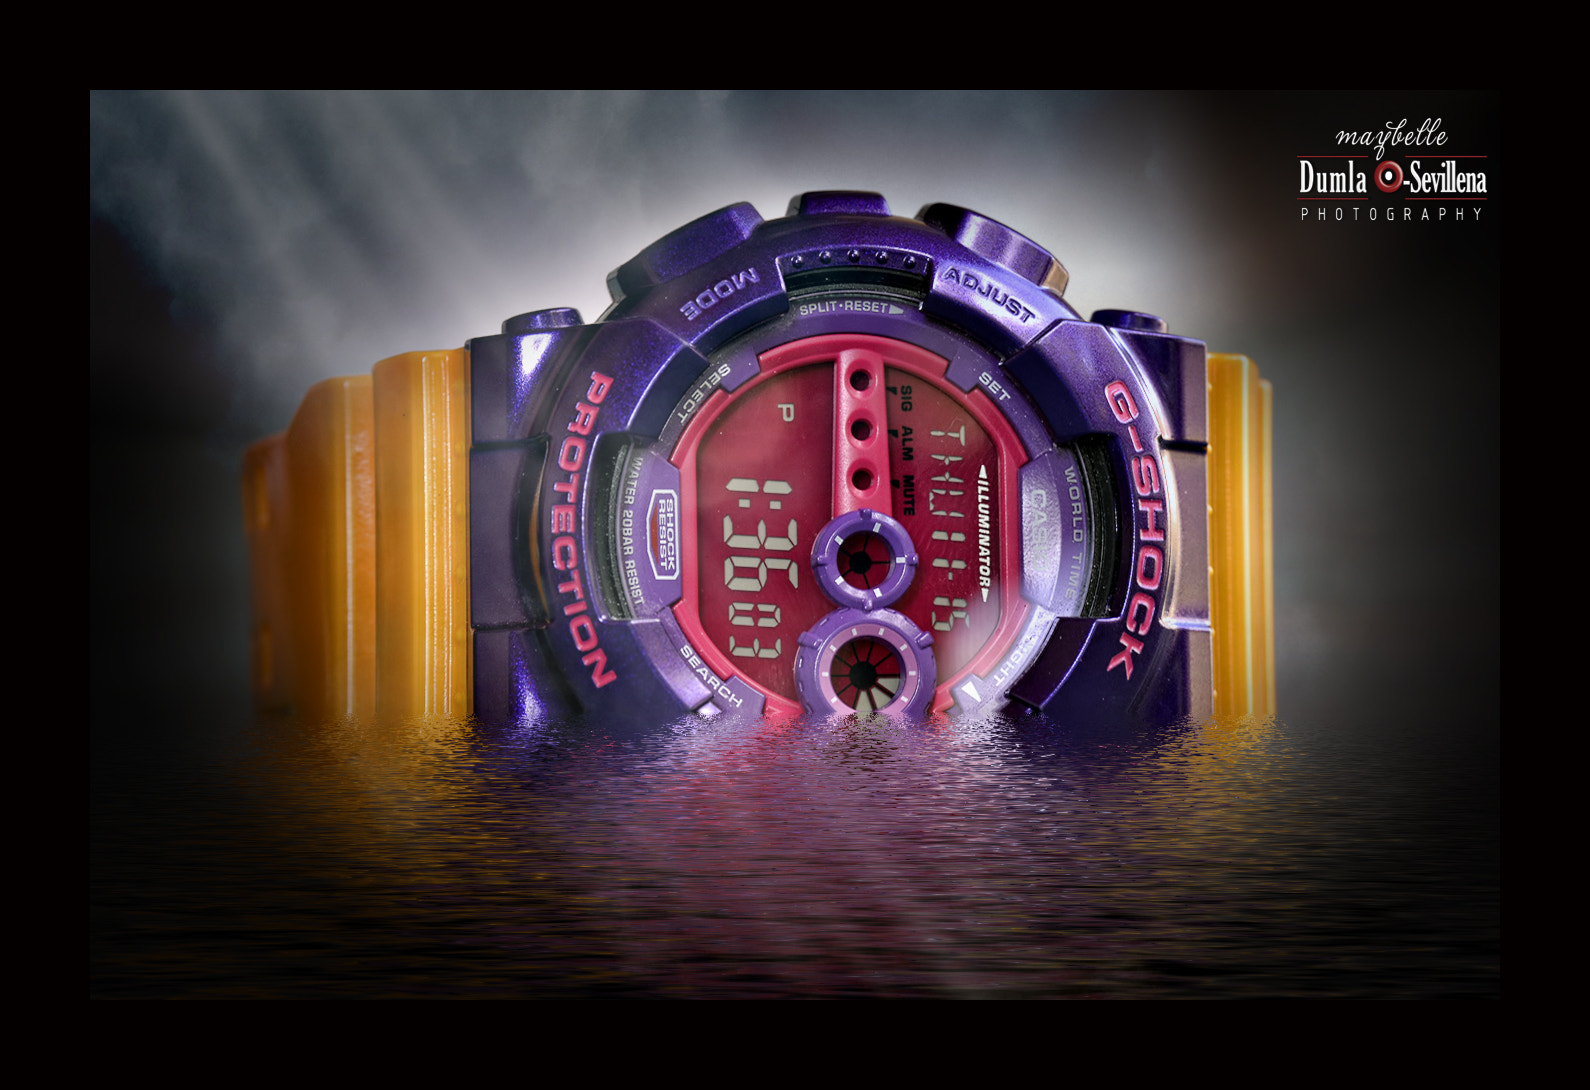 Photograph Tough means gshock :-)  by Maybelle Dumlao- Sevillena on 500px